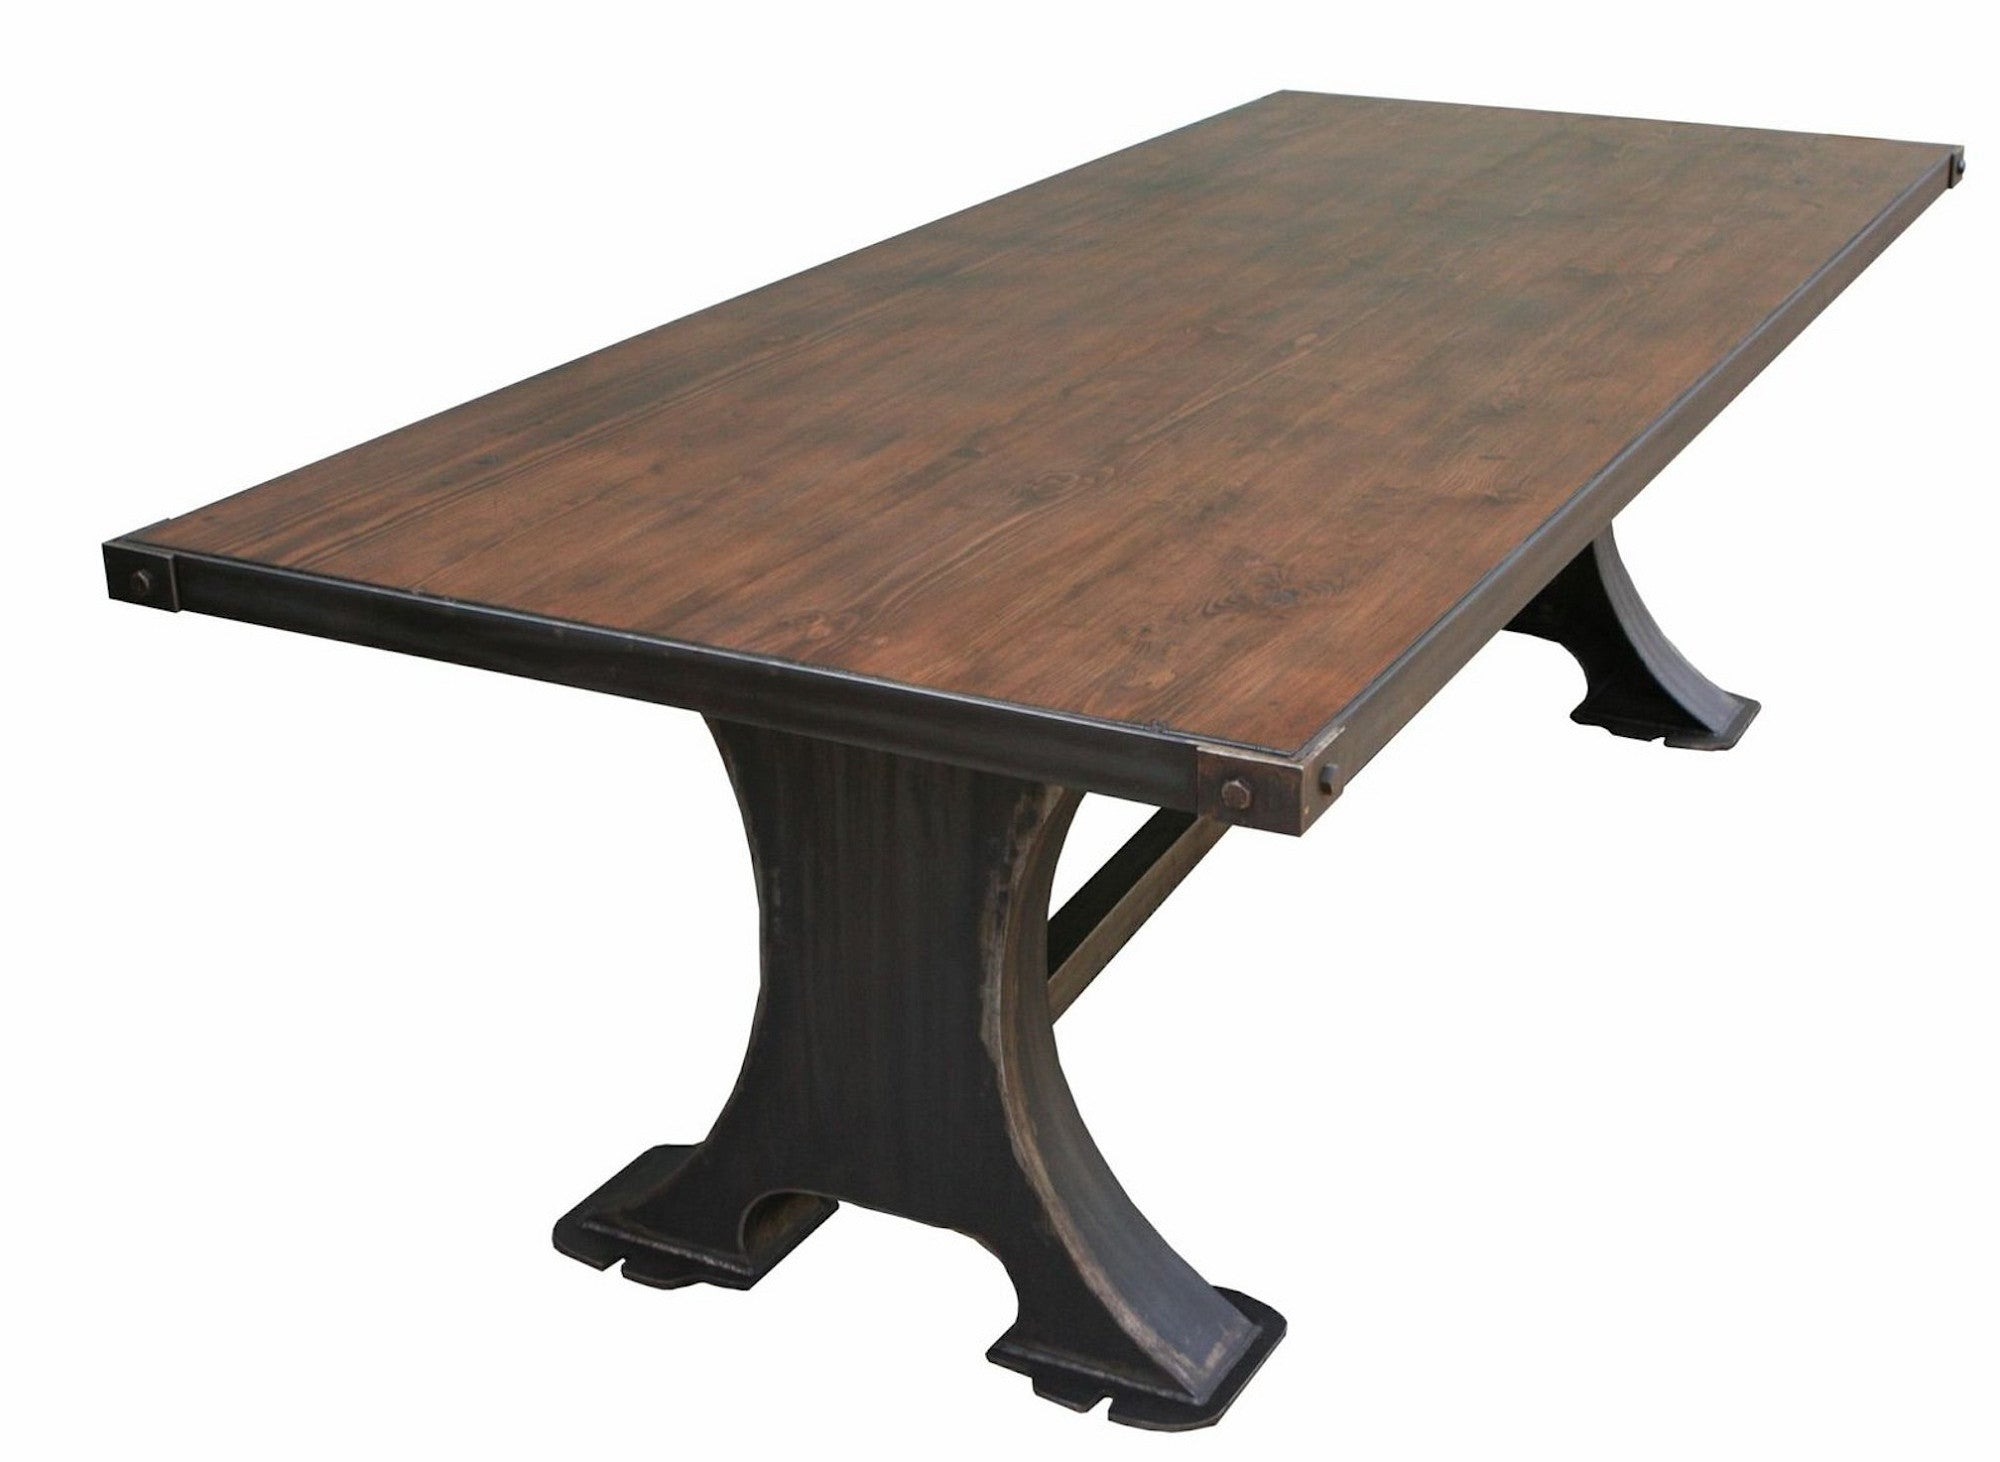 urban industrial dining table urban industrial dining table